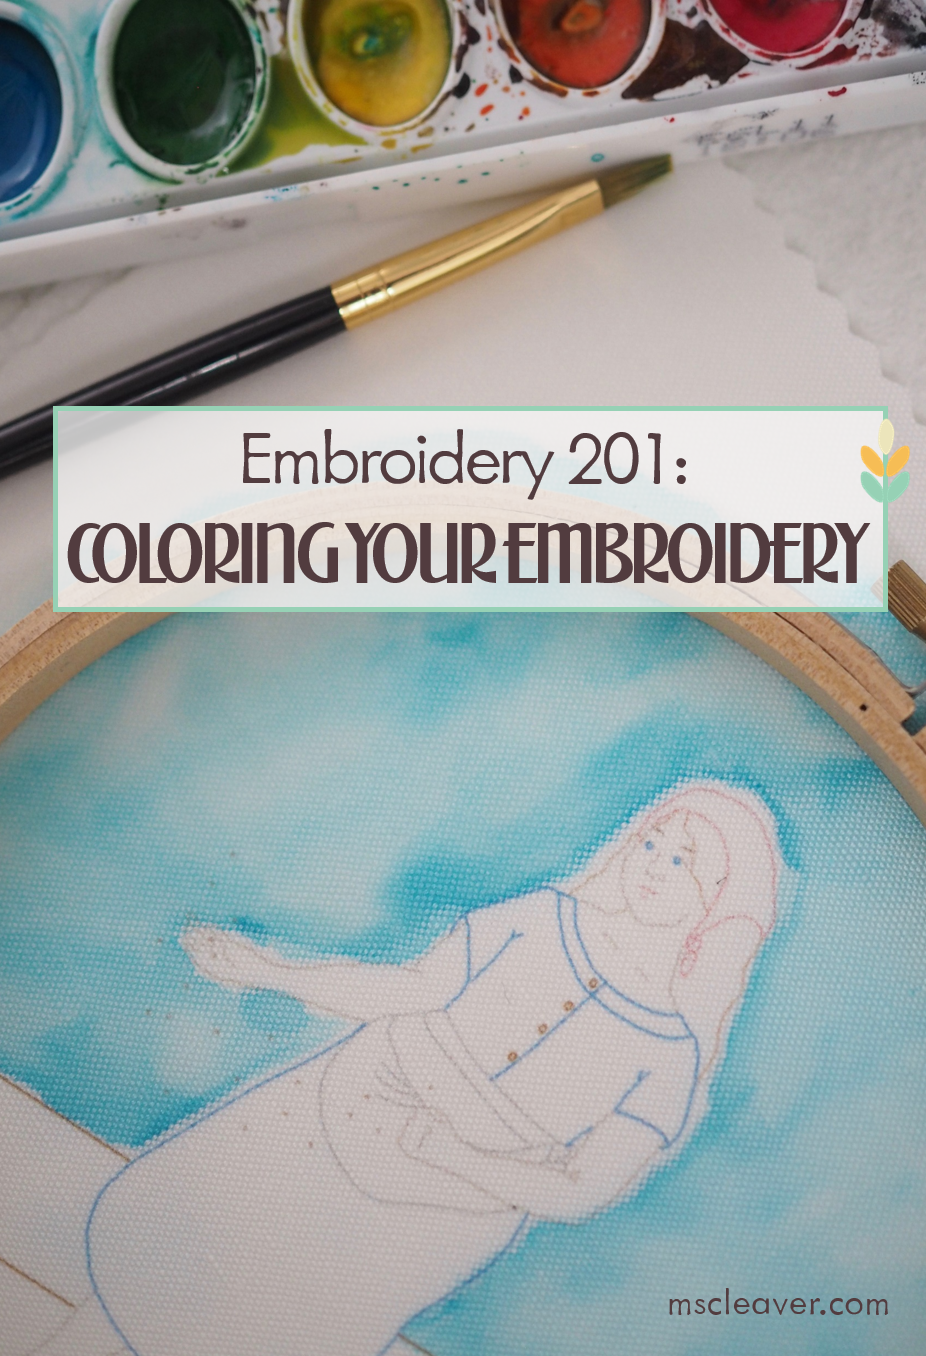 Coloring Embroidery v1.png